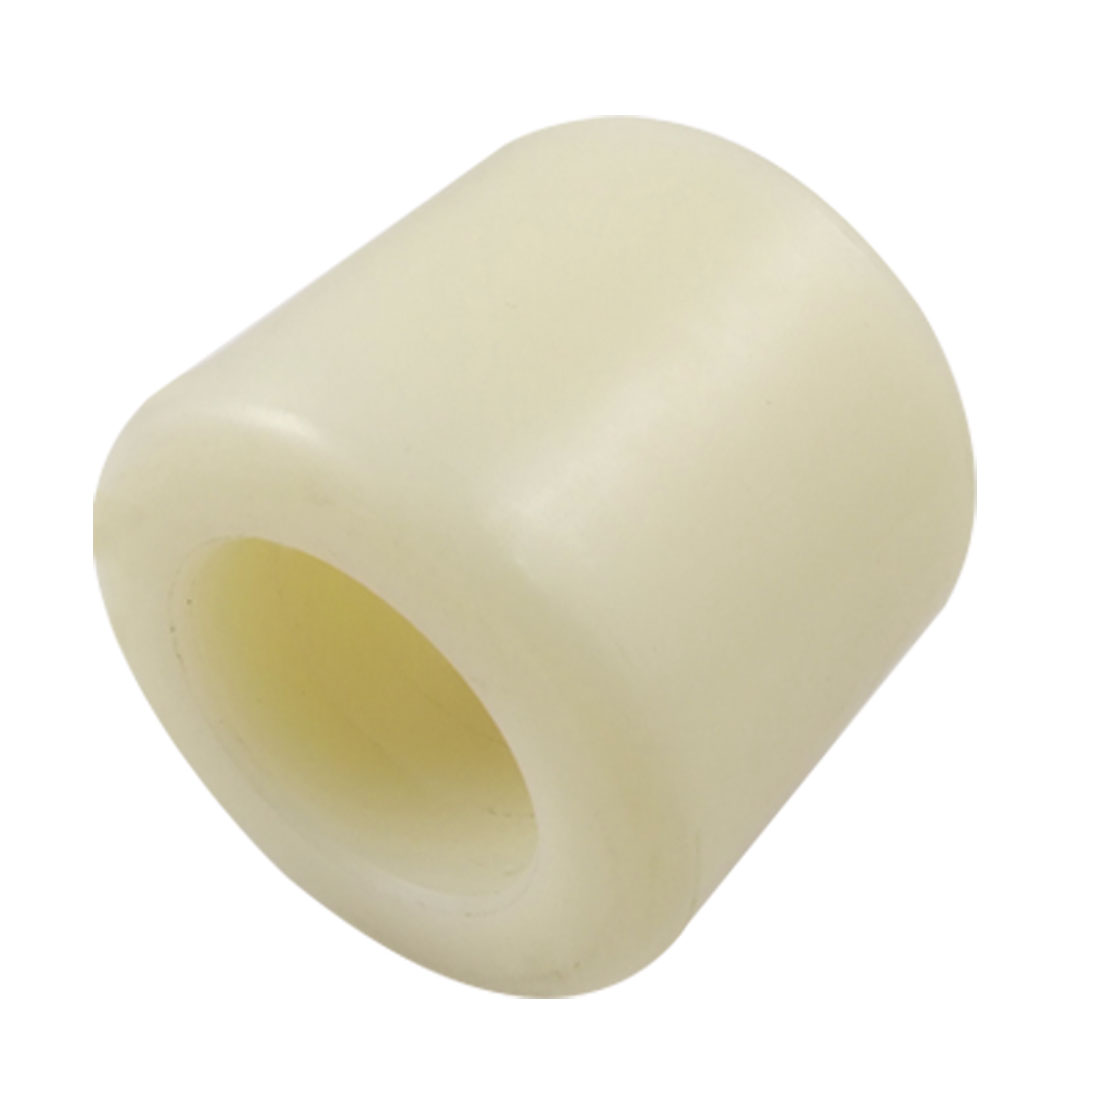 78mm Diameter 69mm Length Nylon Wheel Beige for Pallet Truck